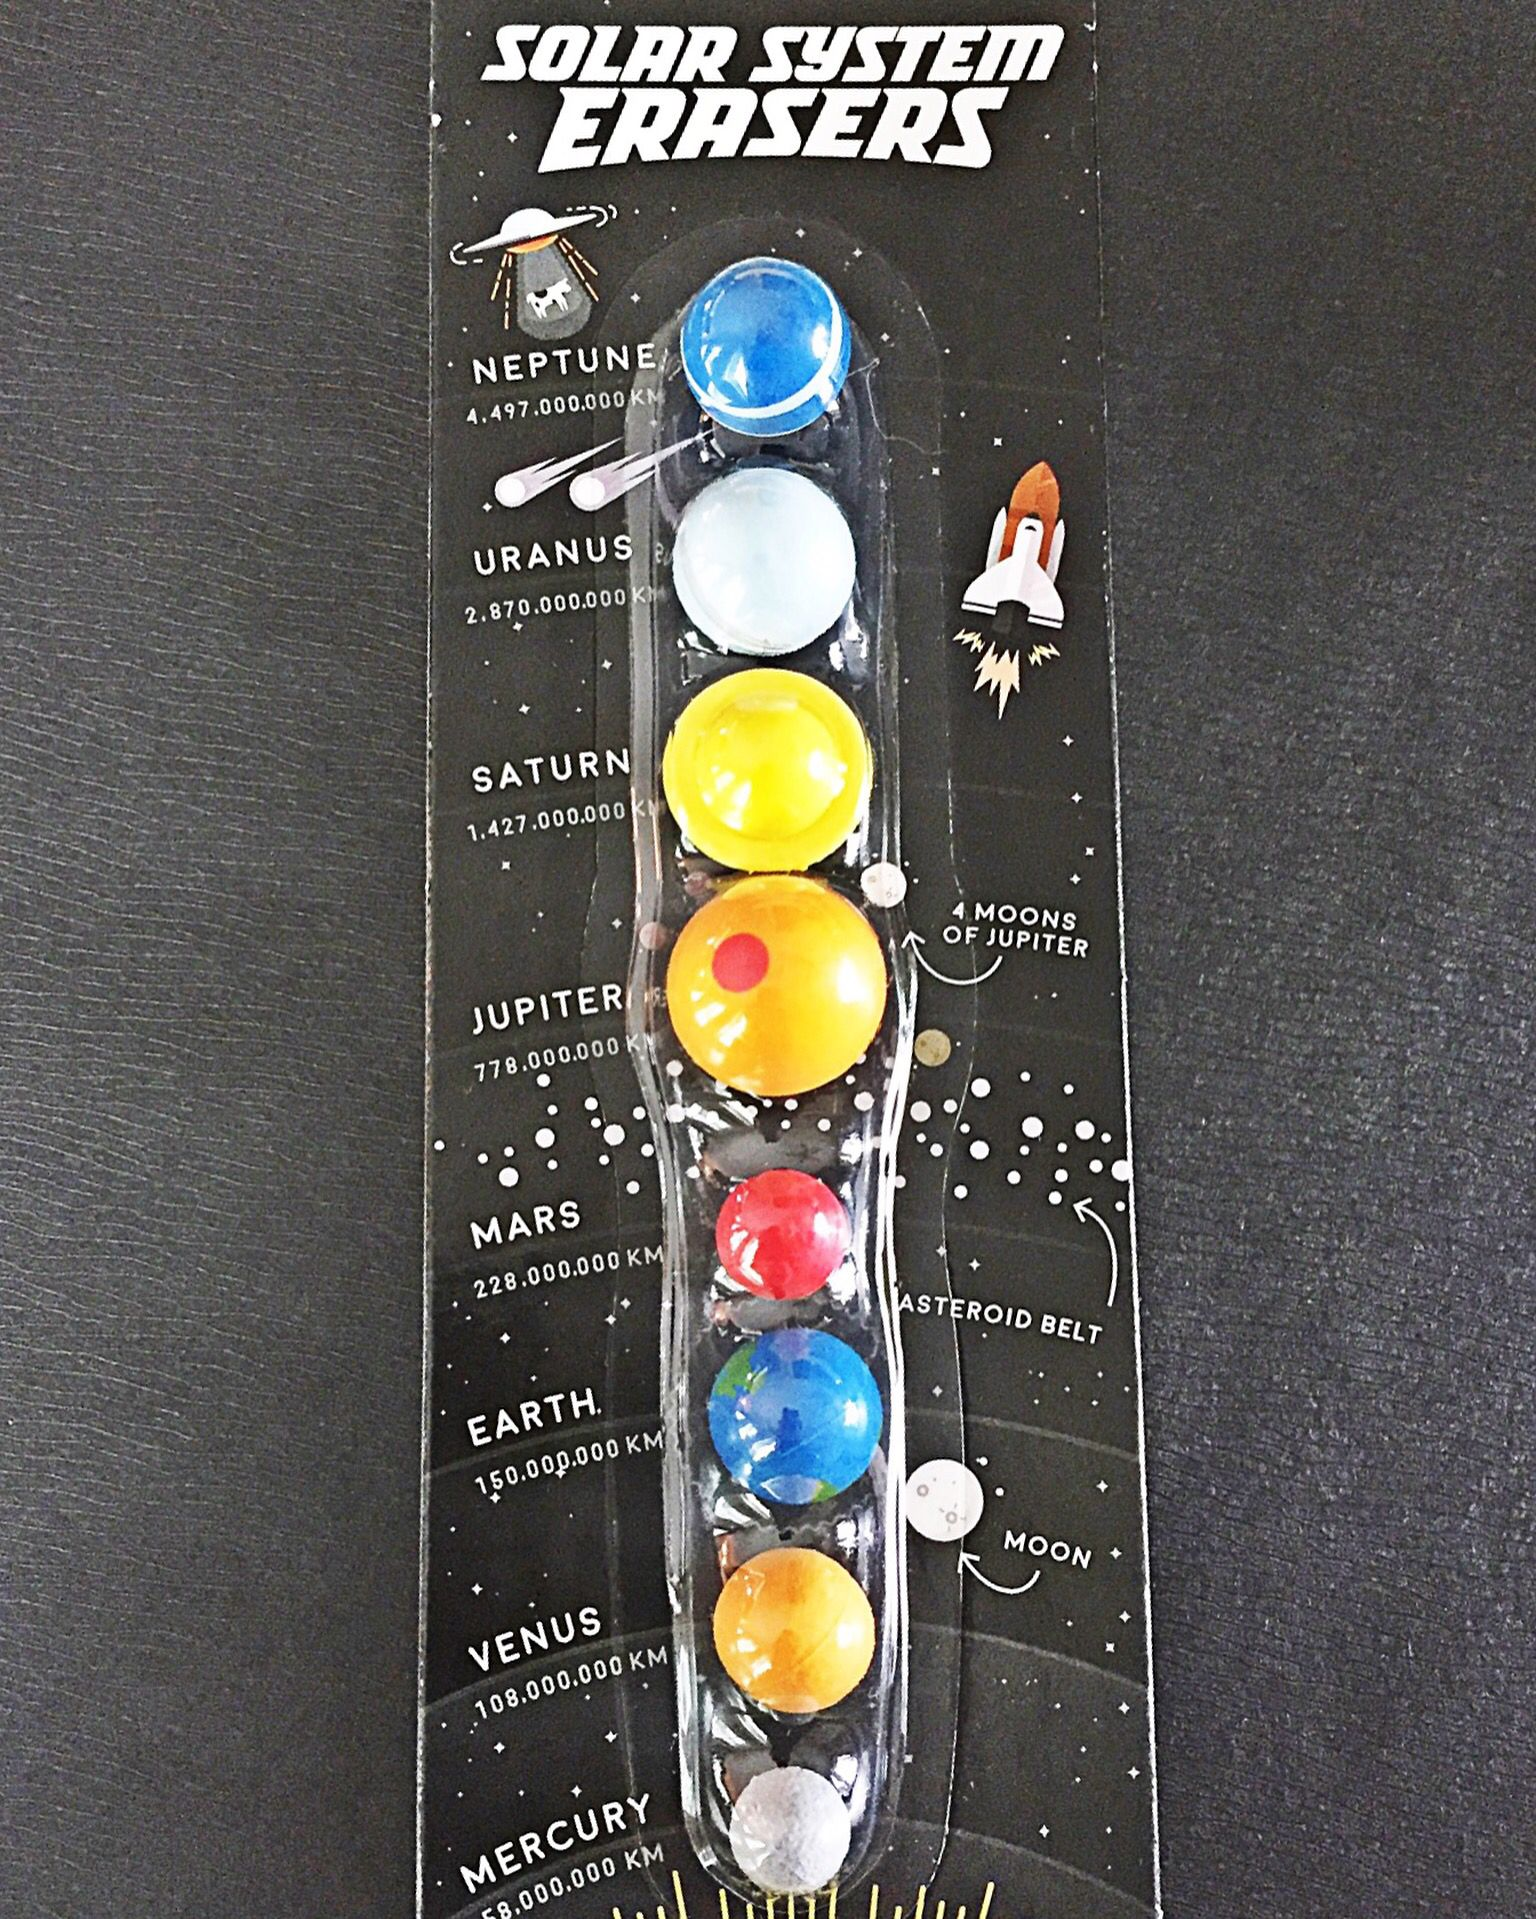 A mistake doesn't have to be the end of the world... Jupiter and Mars are more than capable of fixing it. Solar system erasers-$11.95